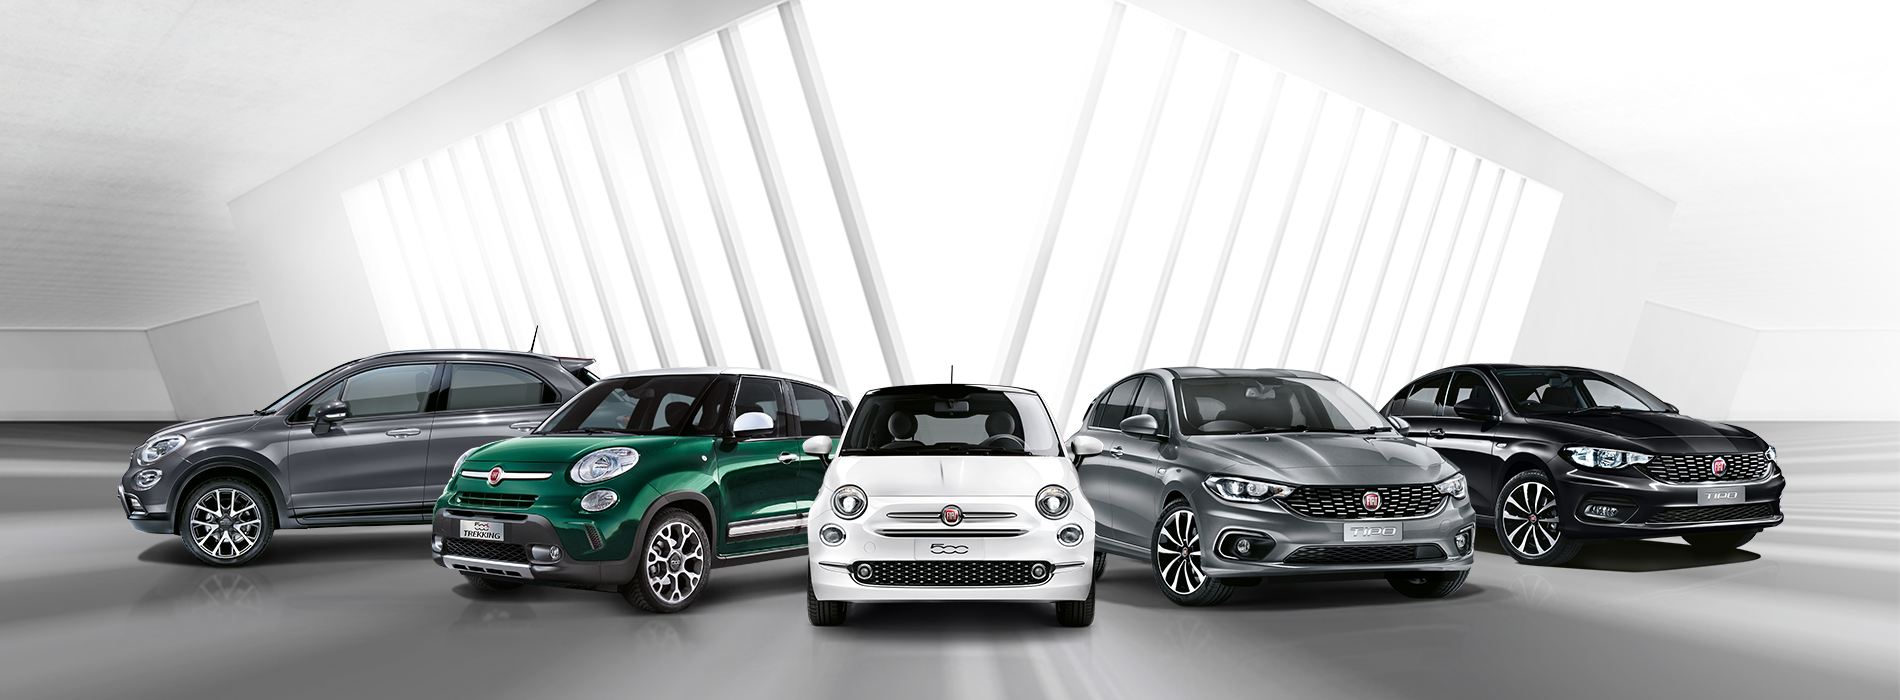 fca-germania-dealer-website-splashpage-fiat-500-tipo-panda-qubo